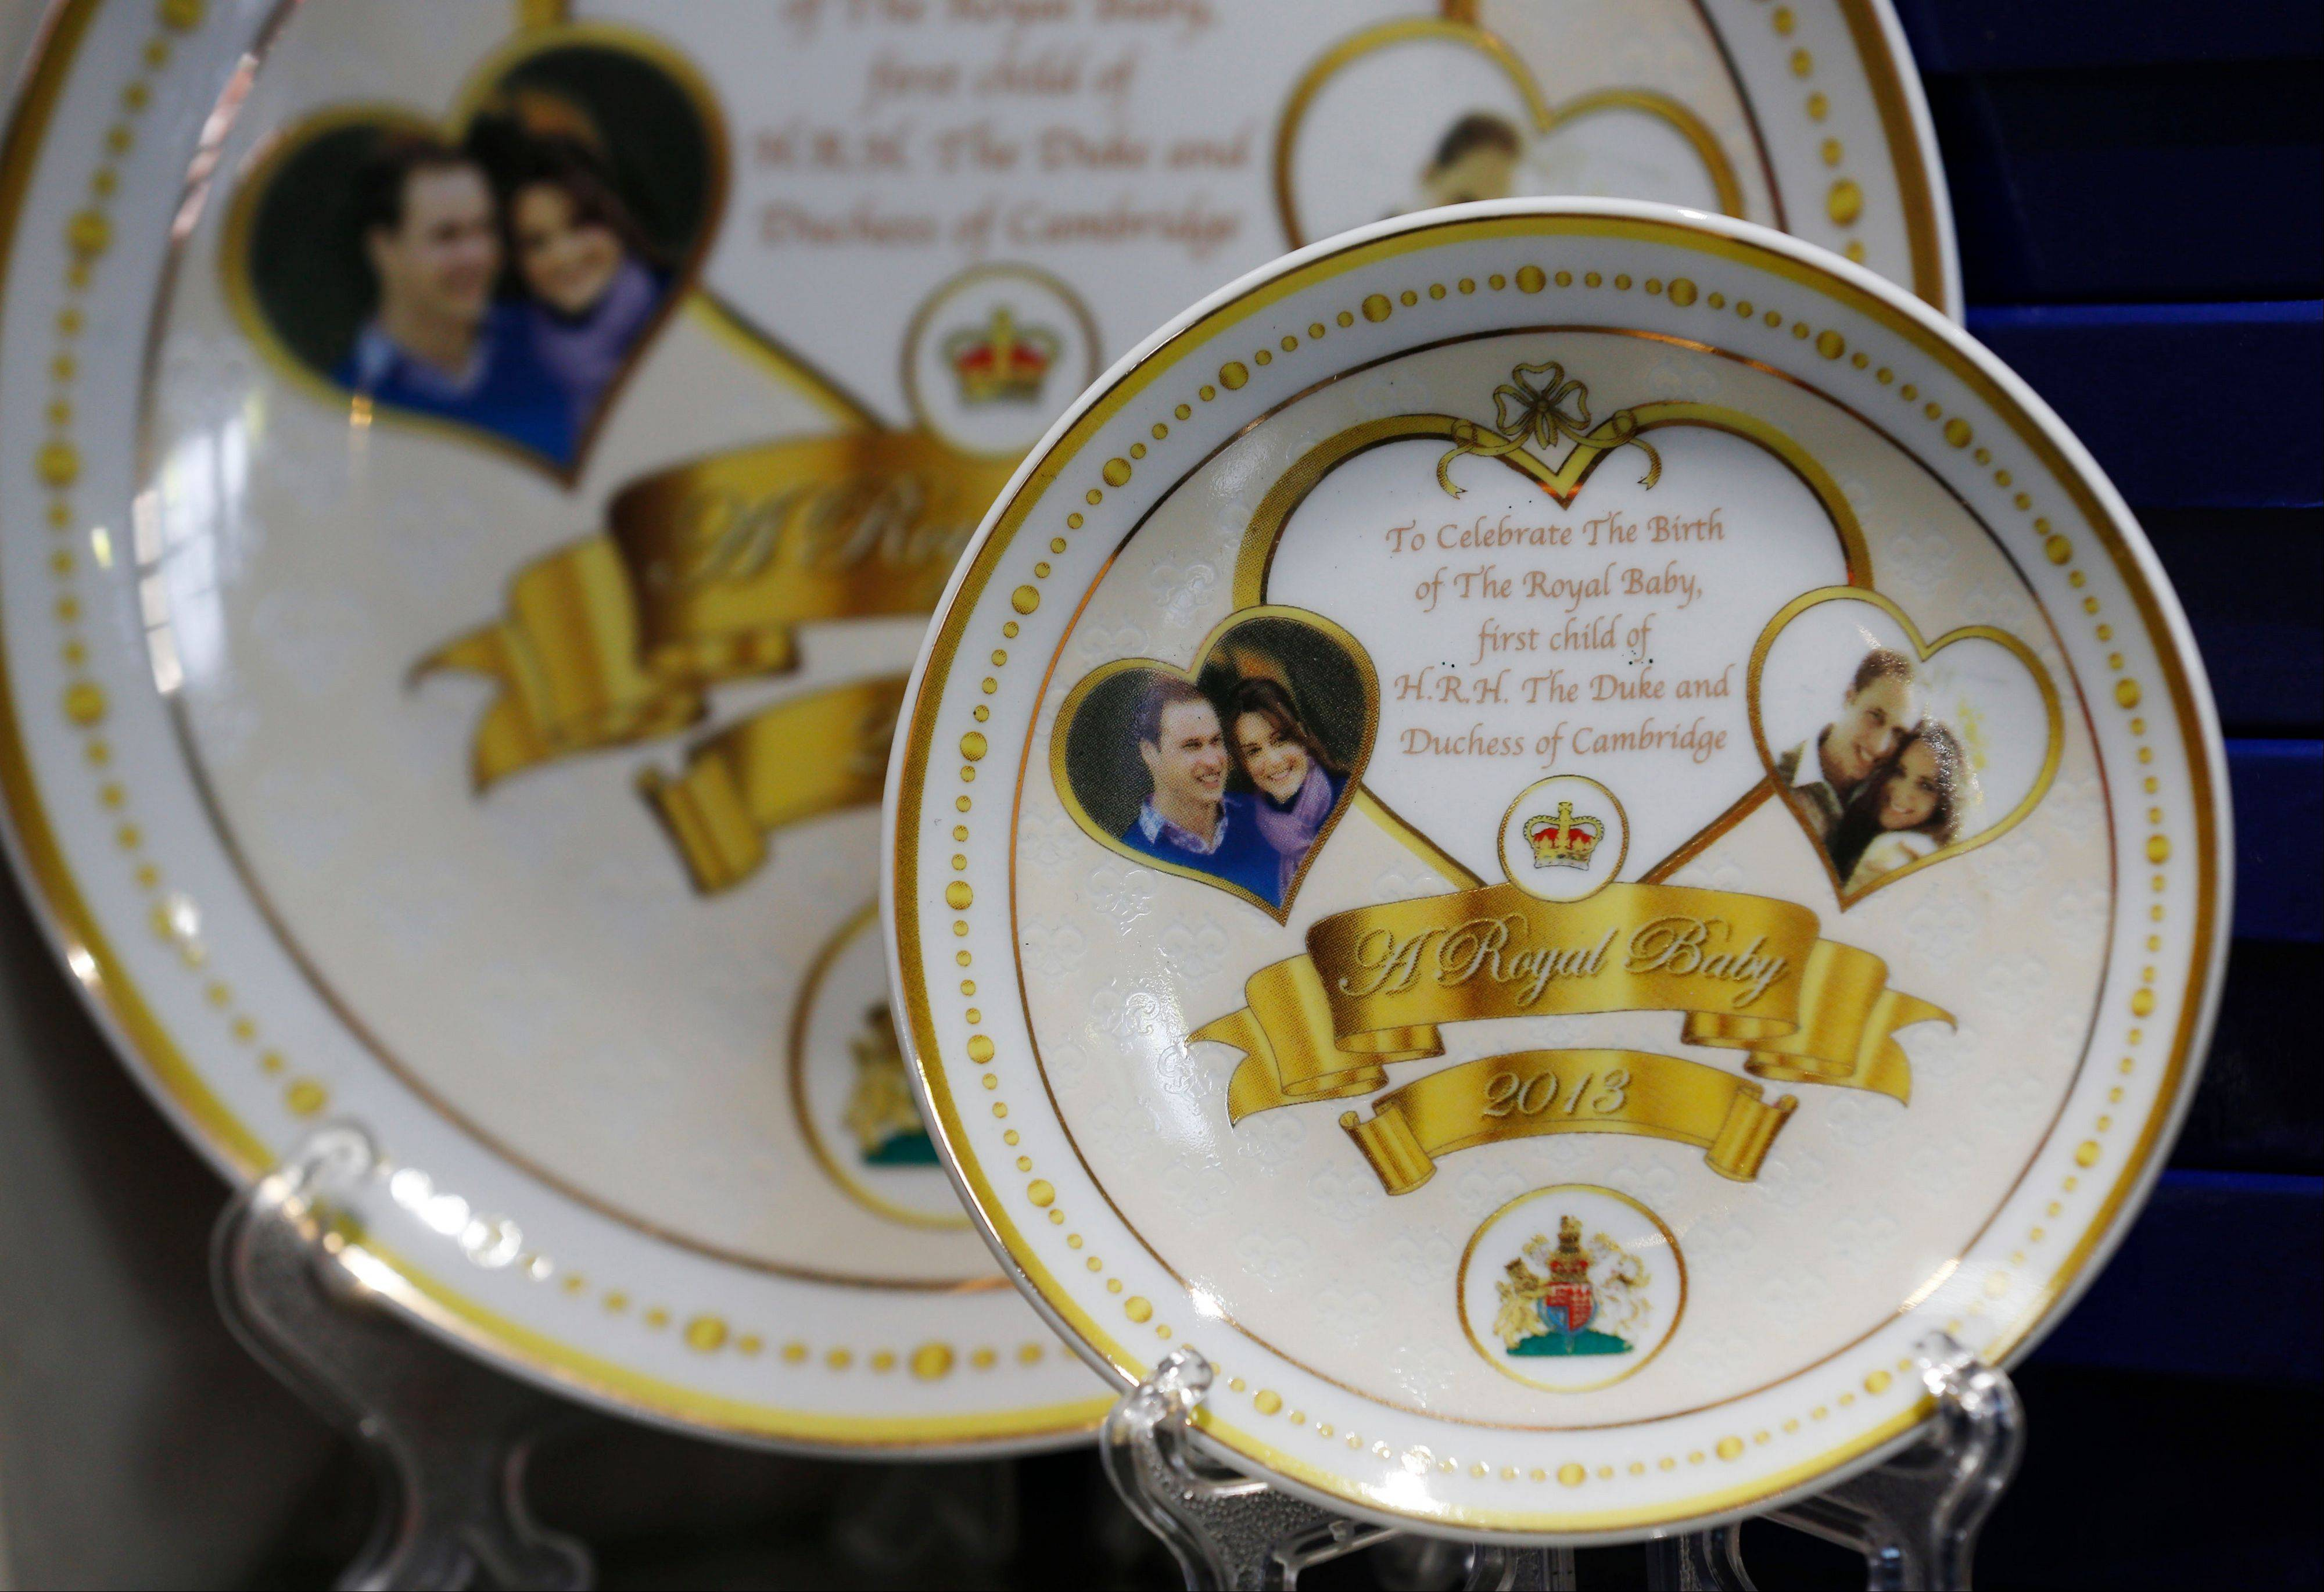 Souvenir plates to mark the forthcoming birth of Prince William and Kate, Duchess of Cambridge's baby are seen on display in a souvenir shop in central London, Wednesday, July 10, 2013.